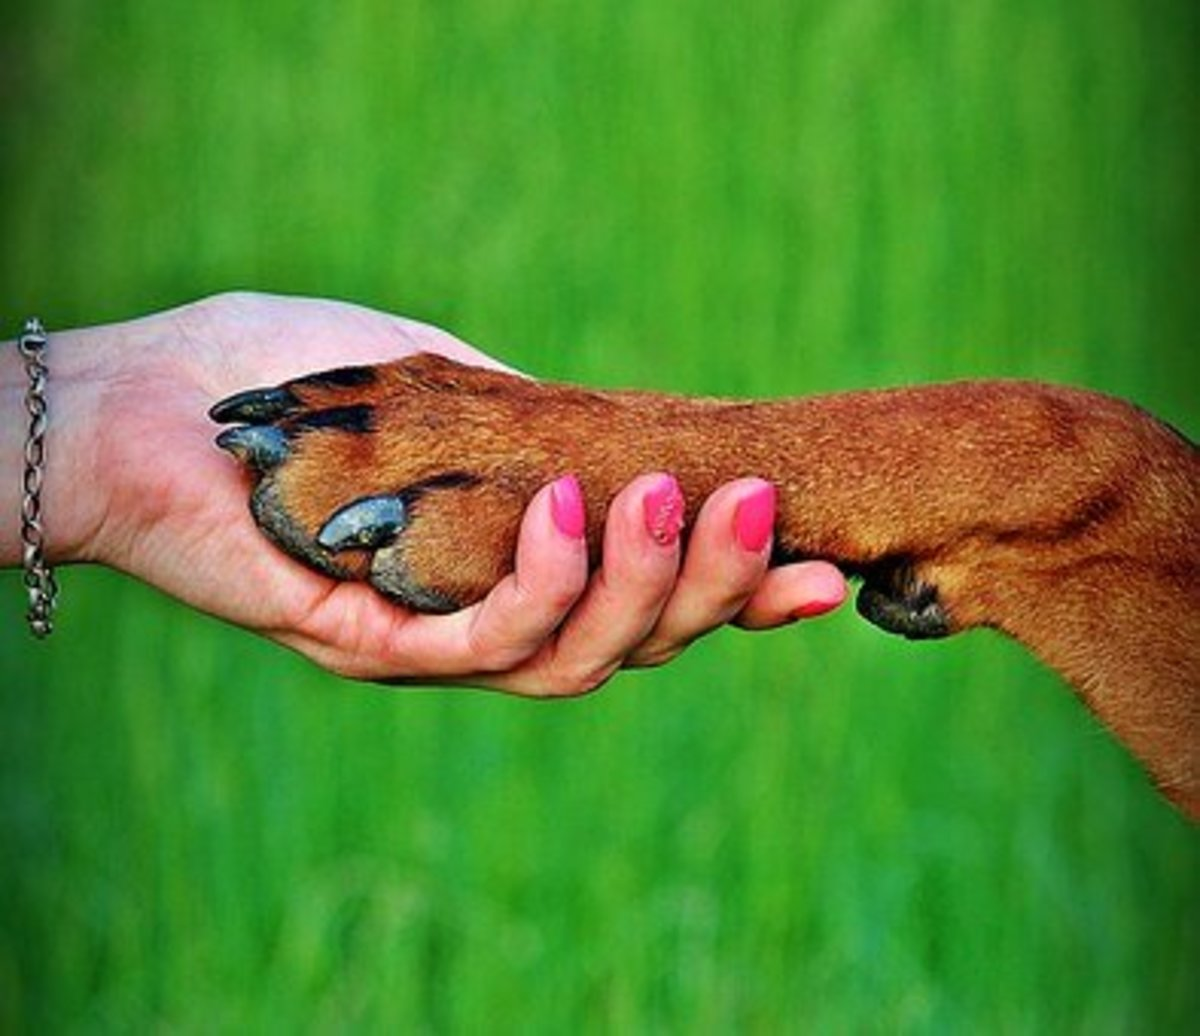 The love and friendship between a person and their dog is unshakeable